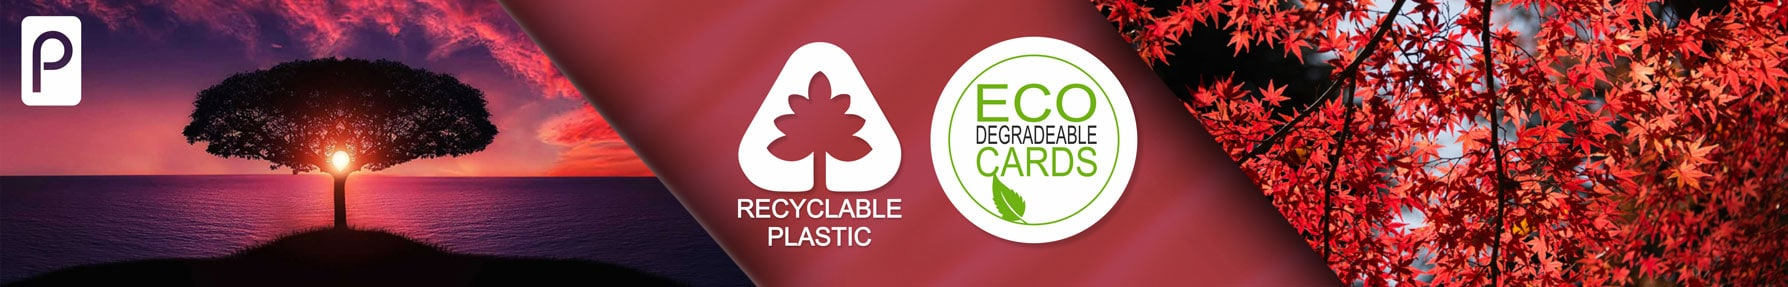 Discount cards from Premier Plastic Cards eco friendly recyclable and degradable